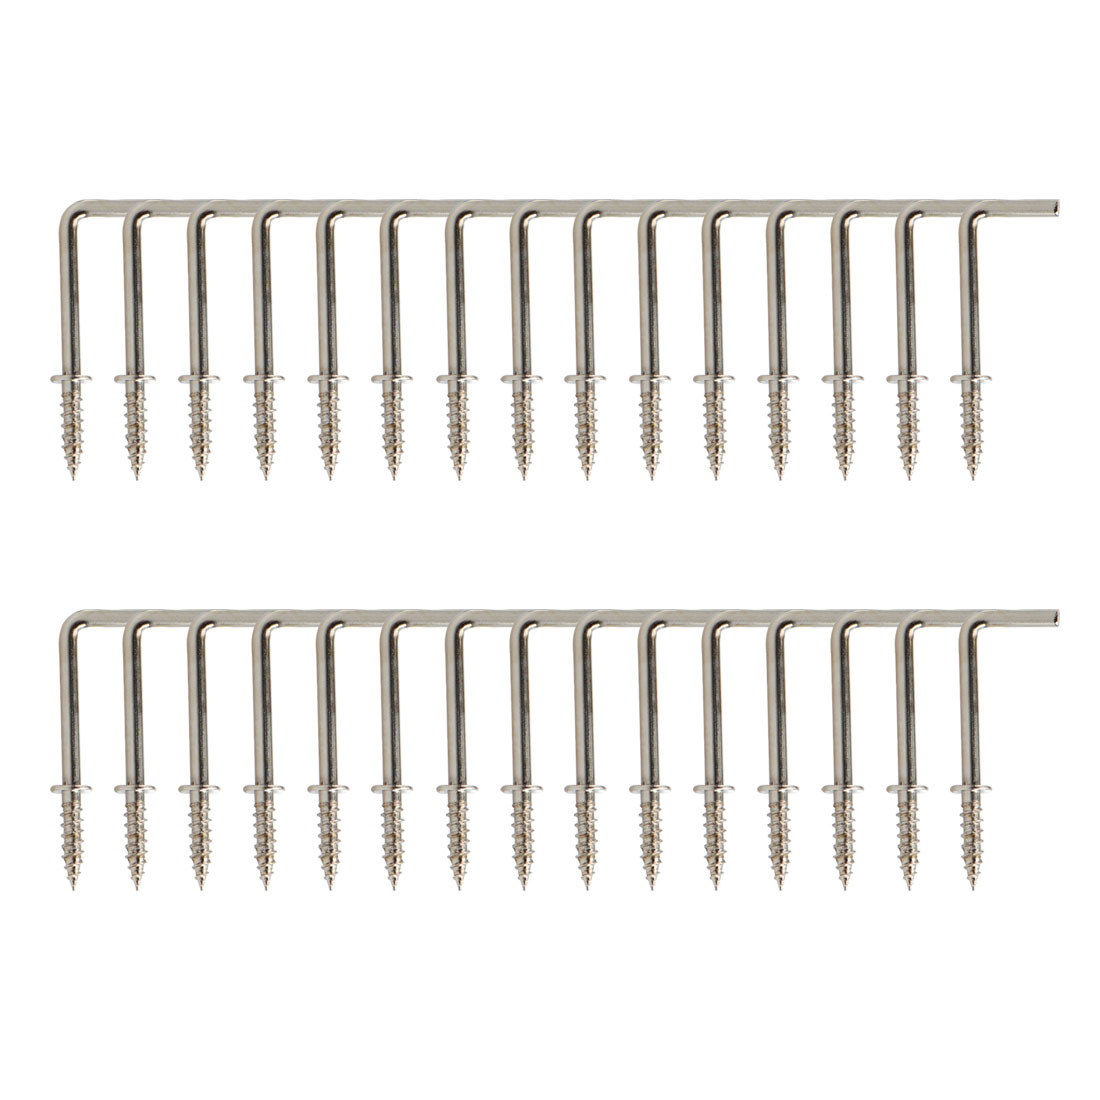 30pcs Cup Square Hook 3/4 Inch Nickel Plating Coated Hanger Holder Silver Gray